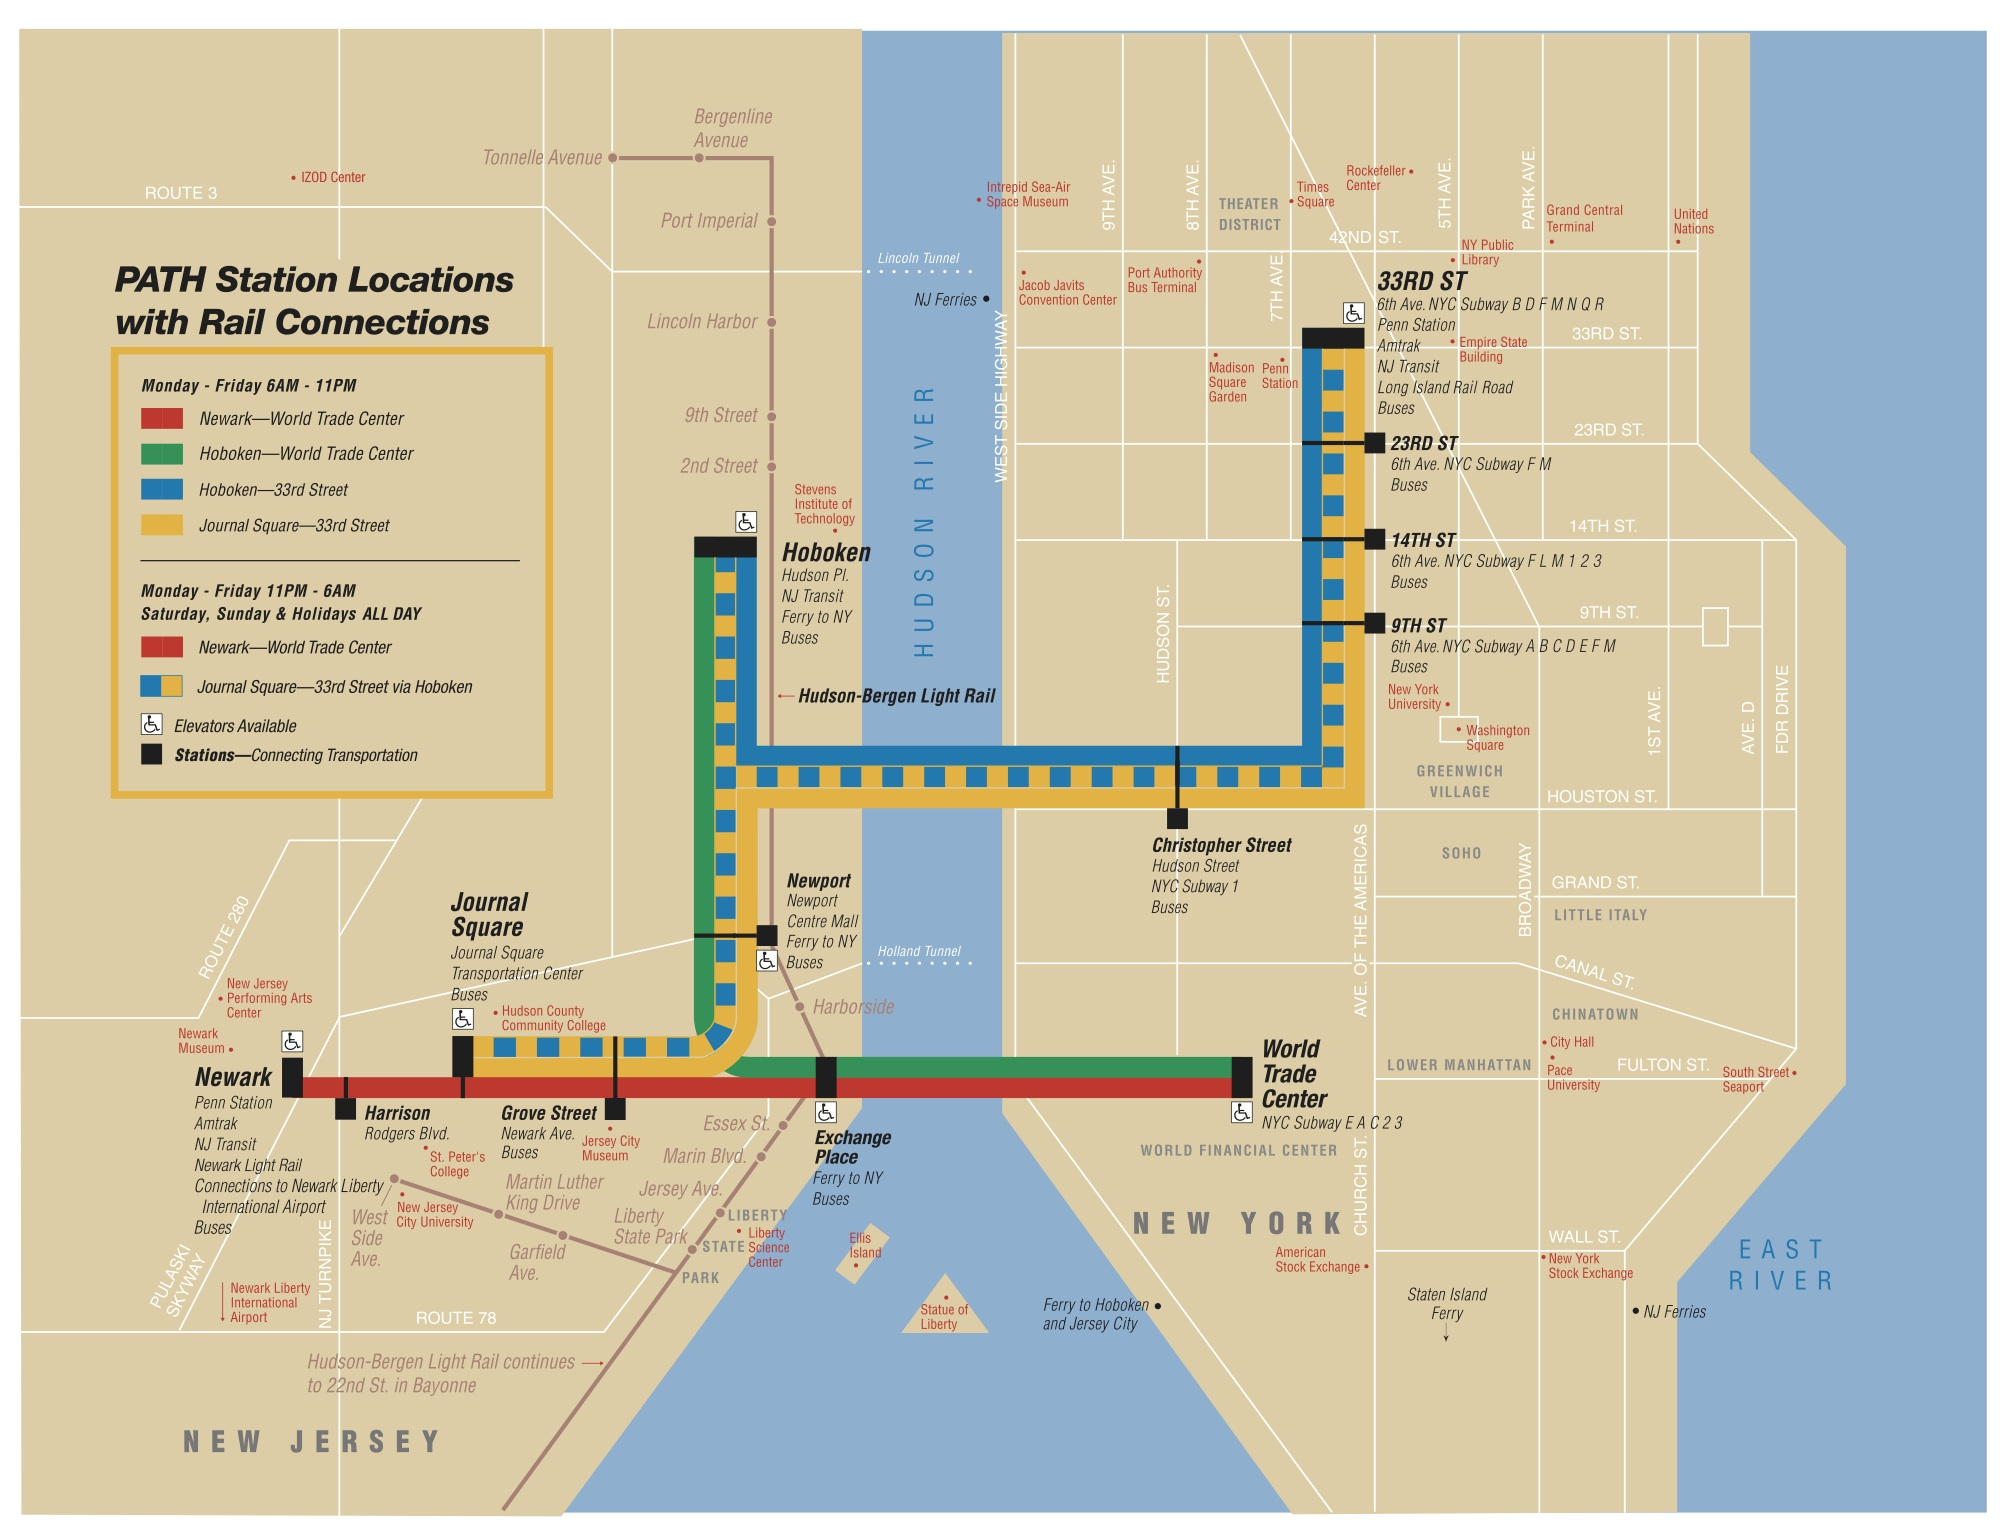 new york city subway schedule with Nj Path Train Map on Enjoy The Oasis Of Bryant Park In New York City additionally Nj Path Train Map together with The evolution of the ttc subway map additionally Amsterdam Subway Map besides Drpa Announces Significant South Jersey Transit Proposals.